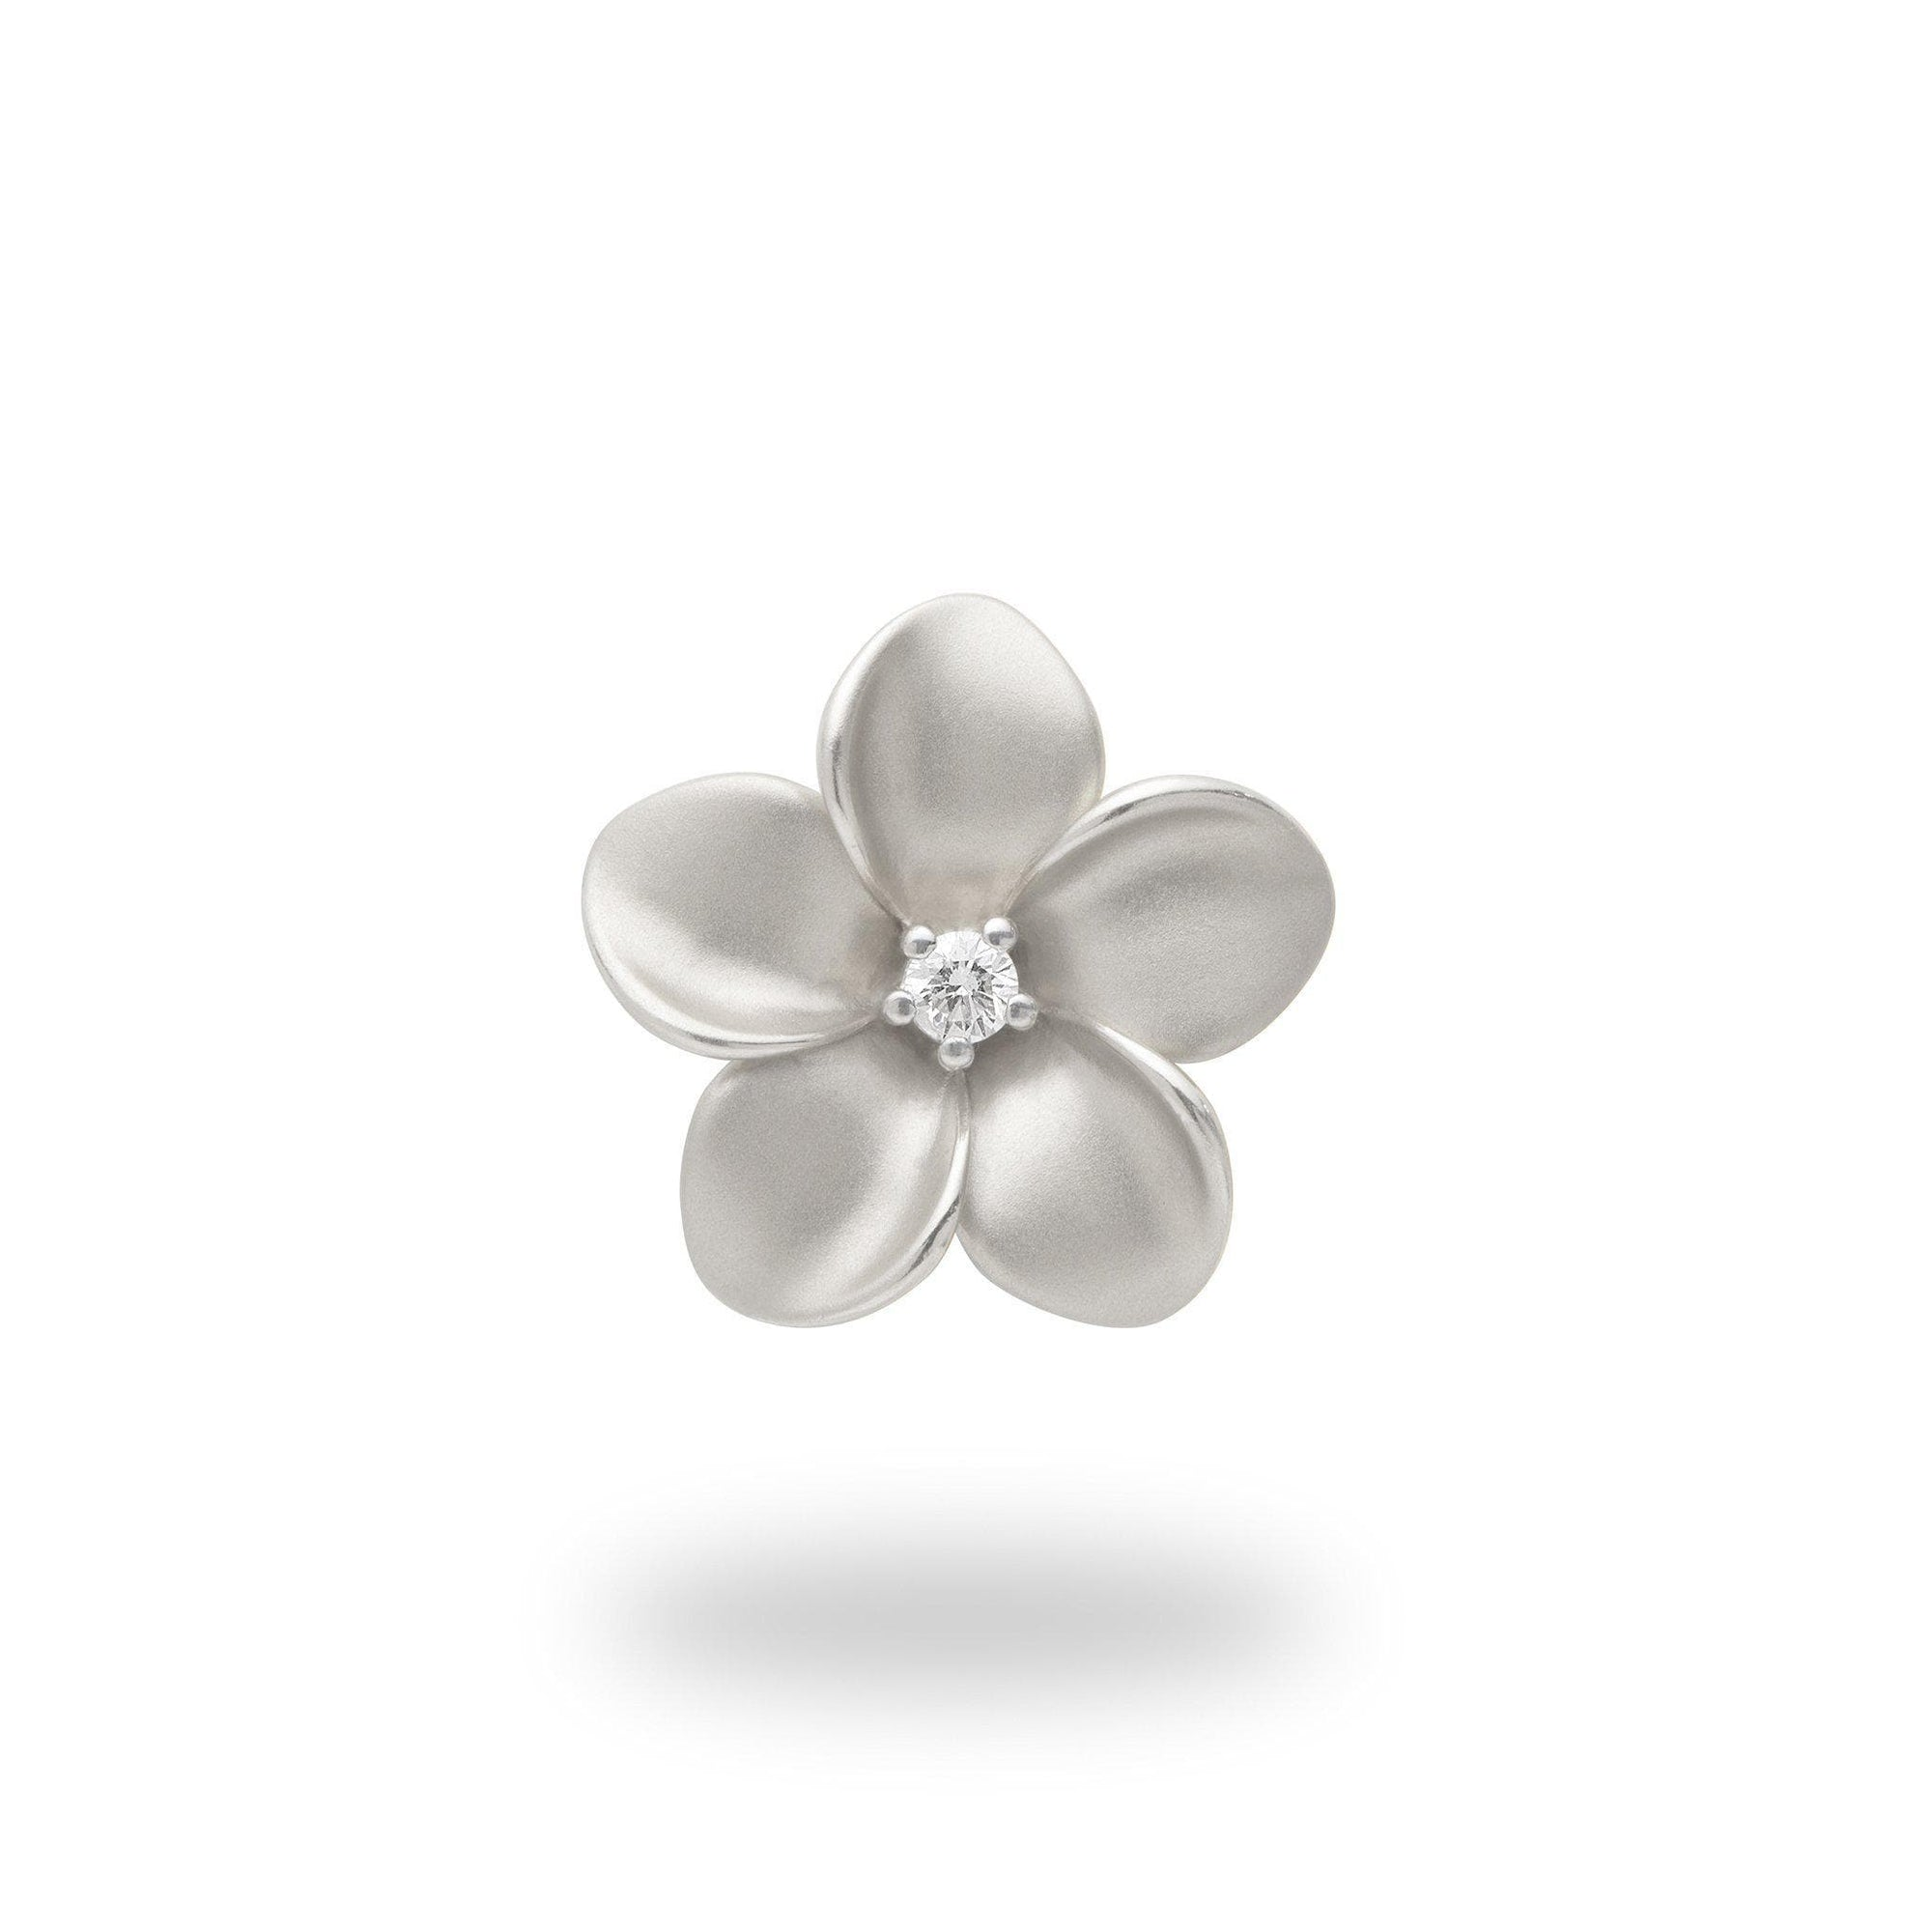 Plumeria Pendant in White Gold with Diamond - 16mm-[SKU]